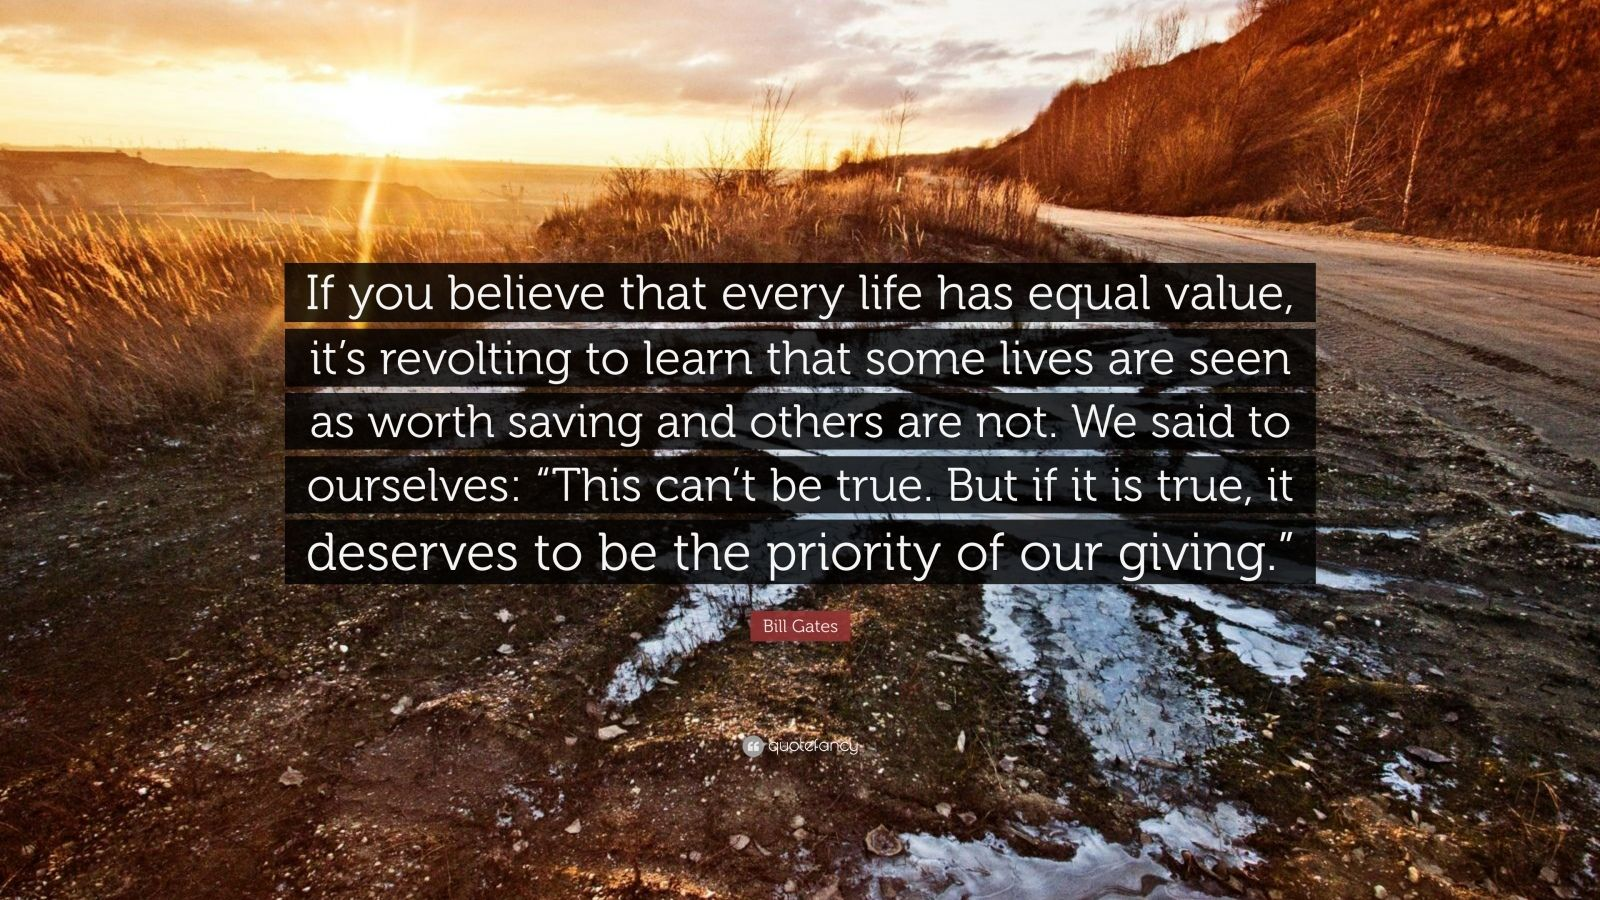 "Bill Gates Quote: ""If you believe that every life has equal value, it's revolting to learn that some lives are seen as worth saving and others are not. We said to ourselves: ""This can't be true. But if it is true, it deserves to be the priority of our giving."""""